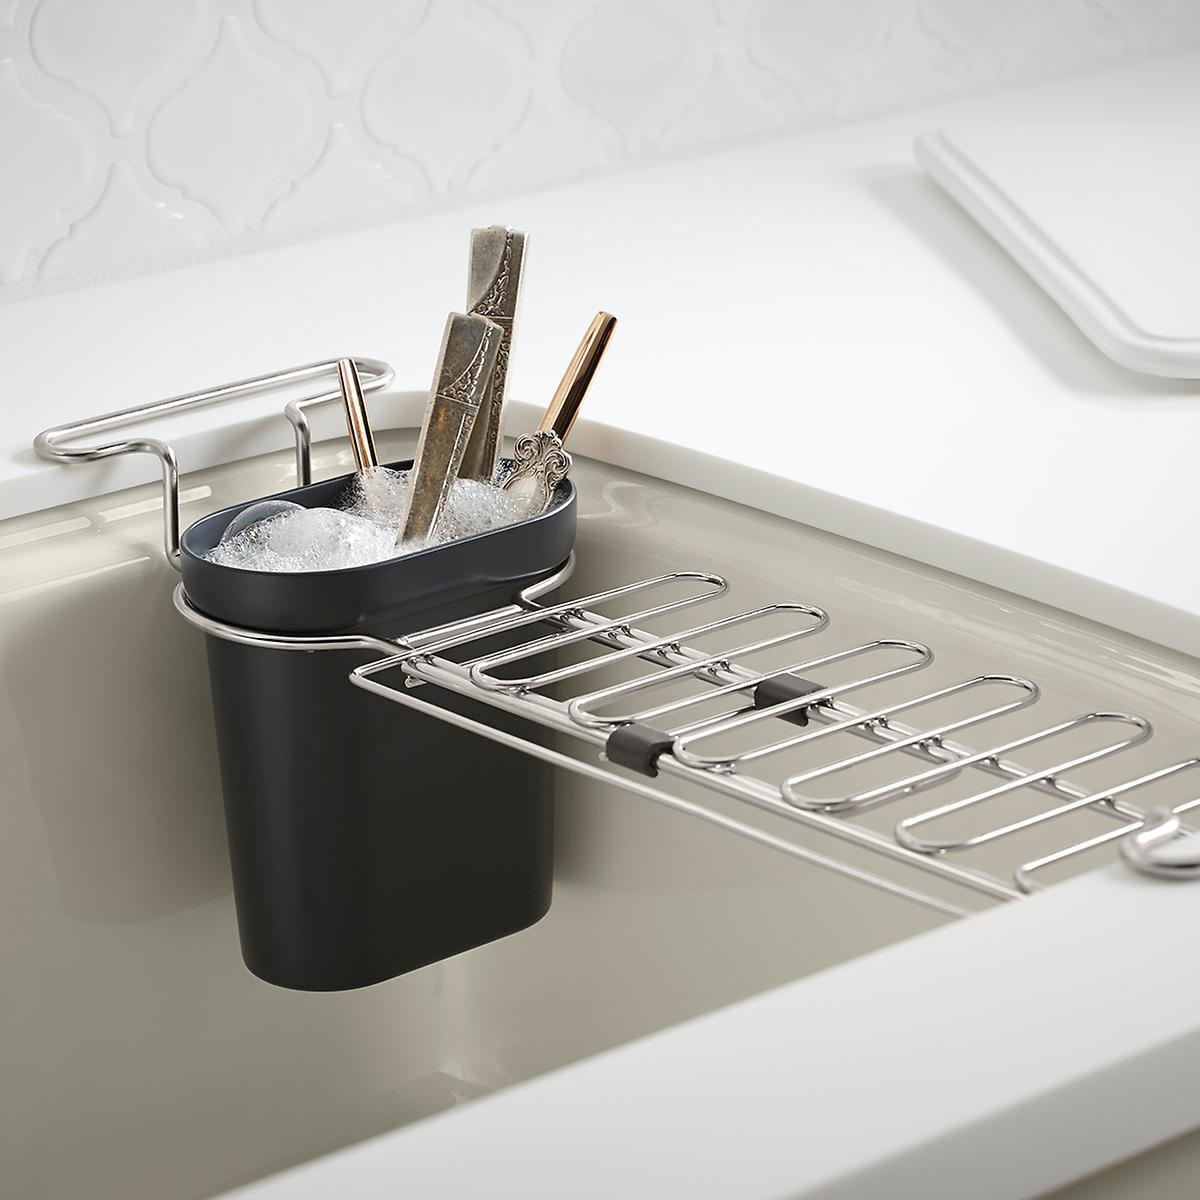 Kohler Chrome Kitchen Sink Utility Rack The Container Store